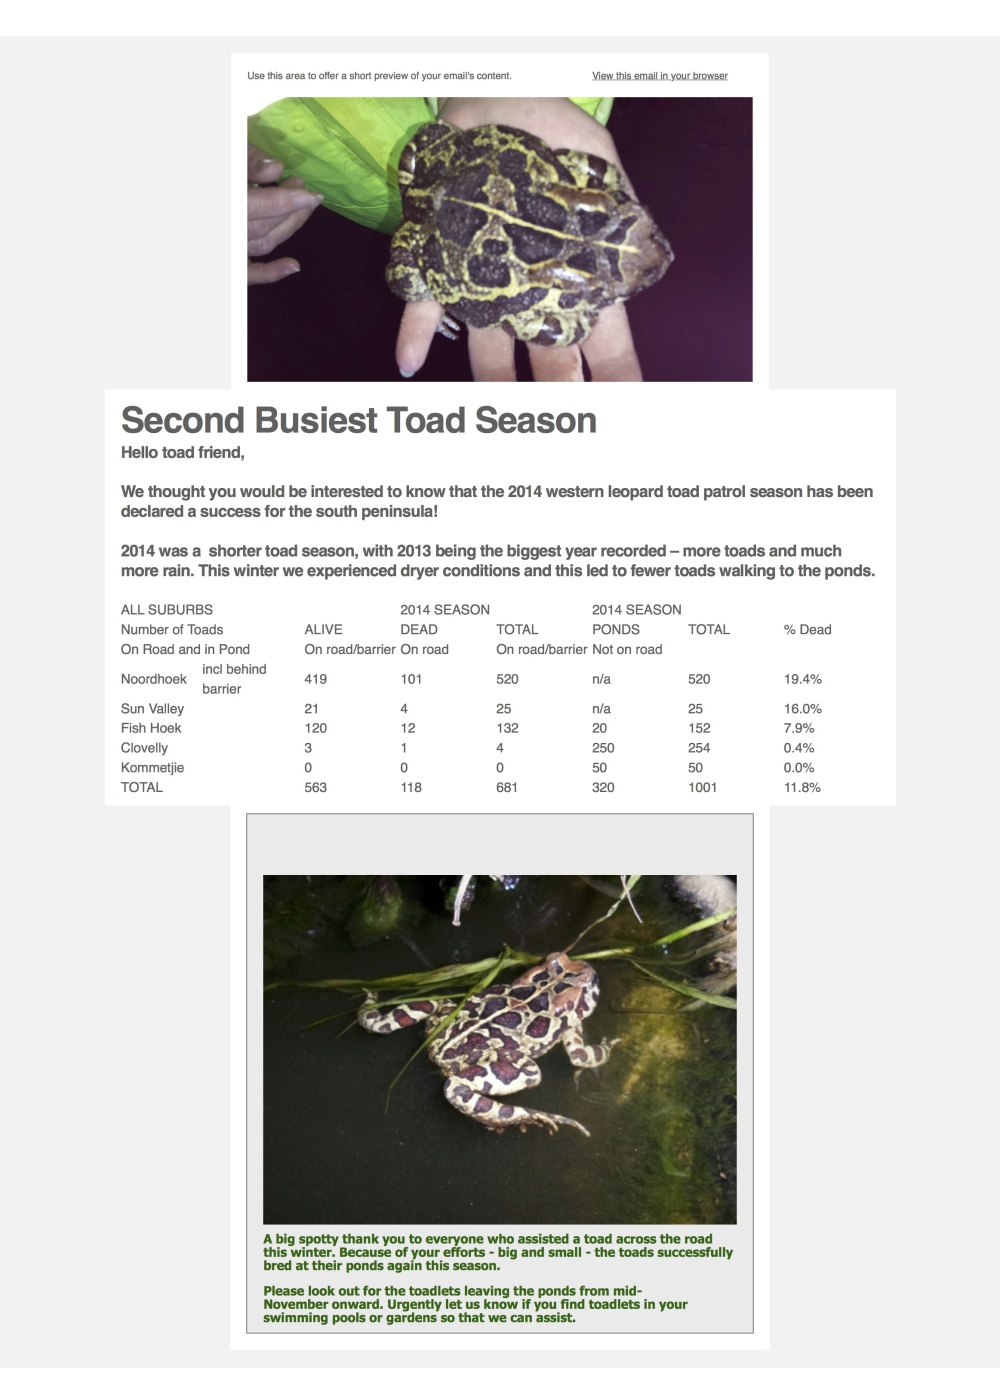 Toad Migration 2014 - results